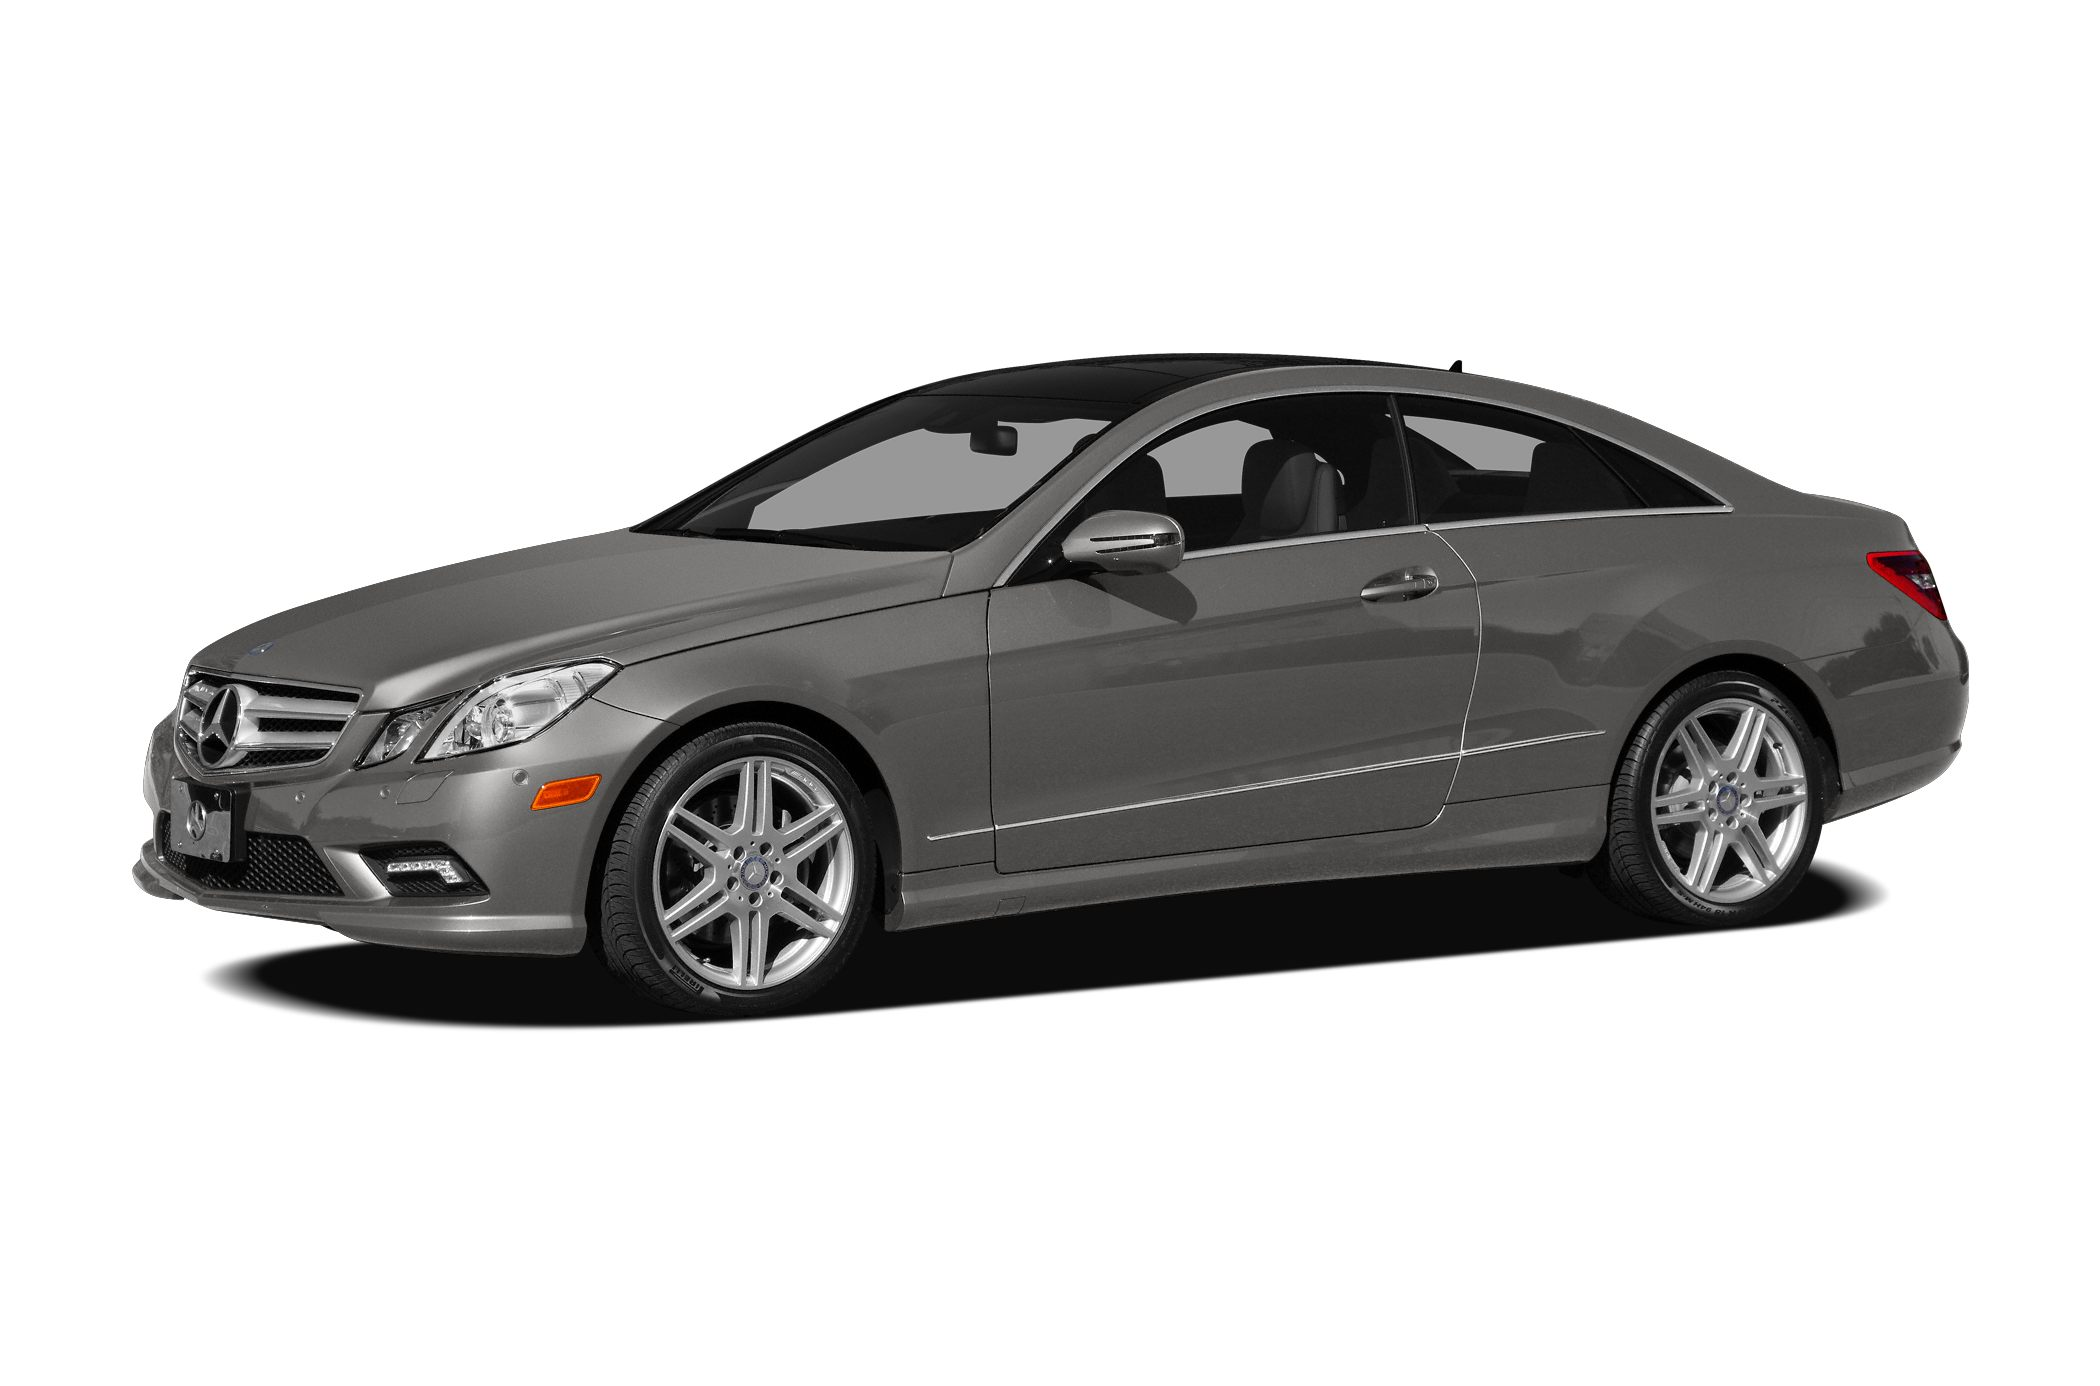 2010 MERCEDES E-Class E350 We sold this one owner very low mileage 2010 E350 Coupe new Only 21k